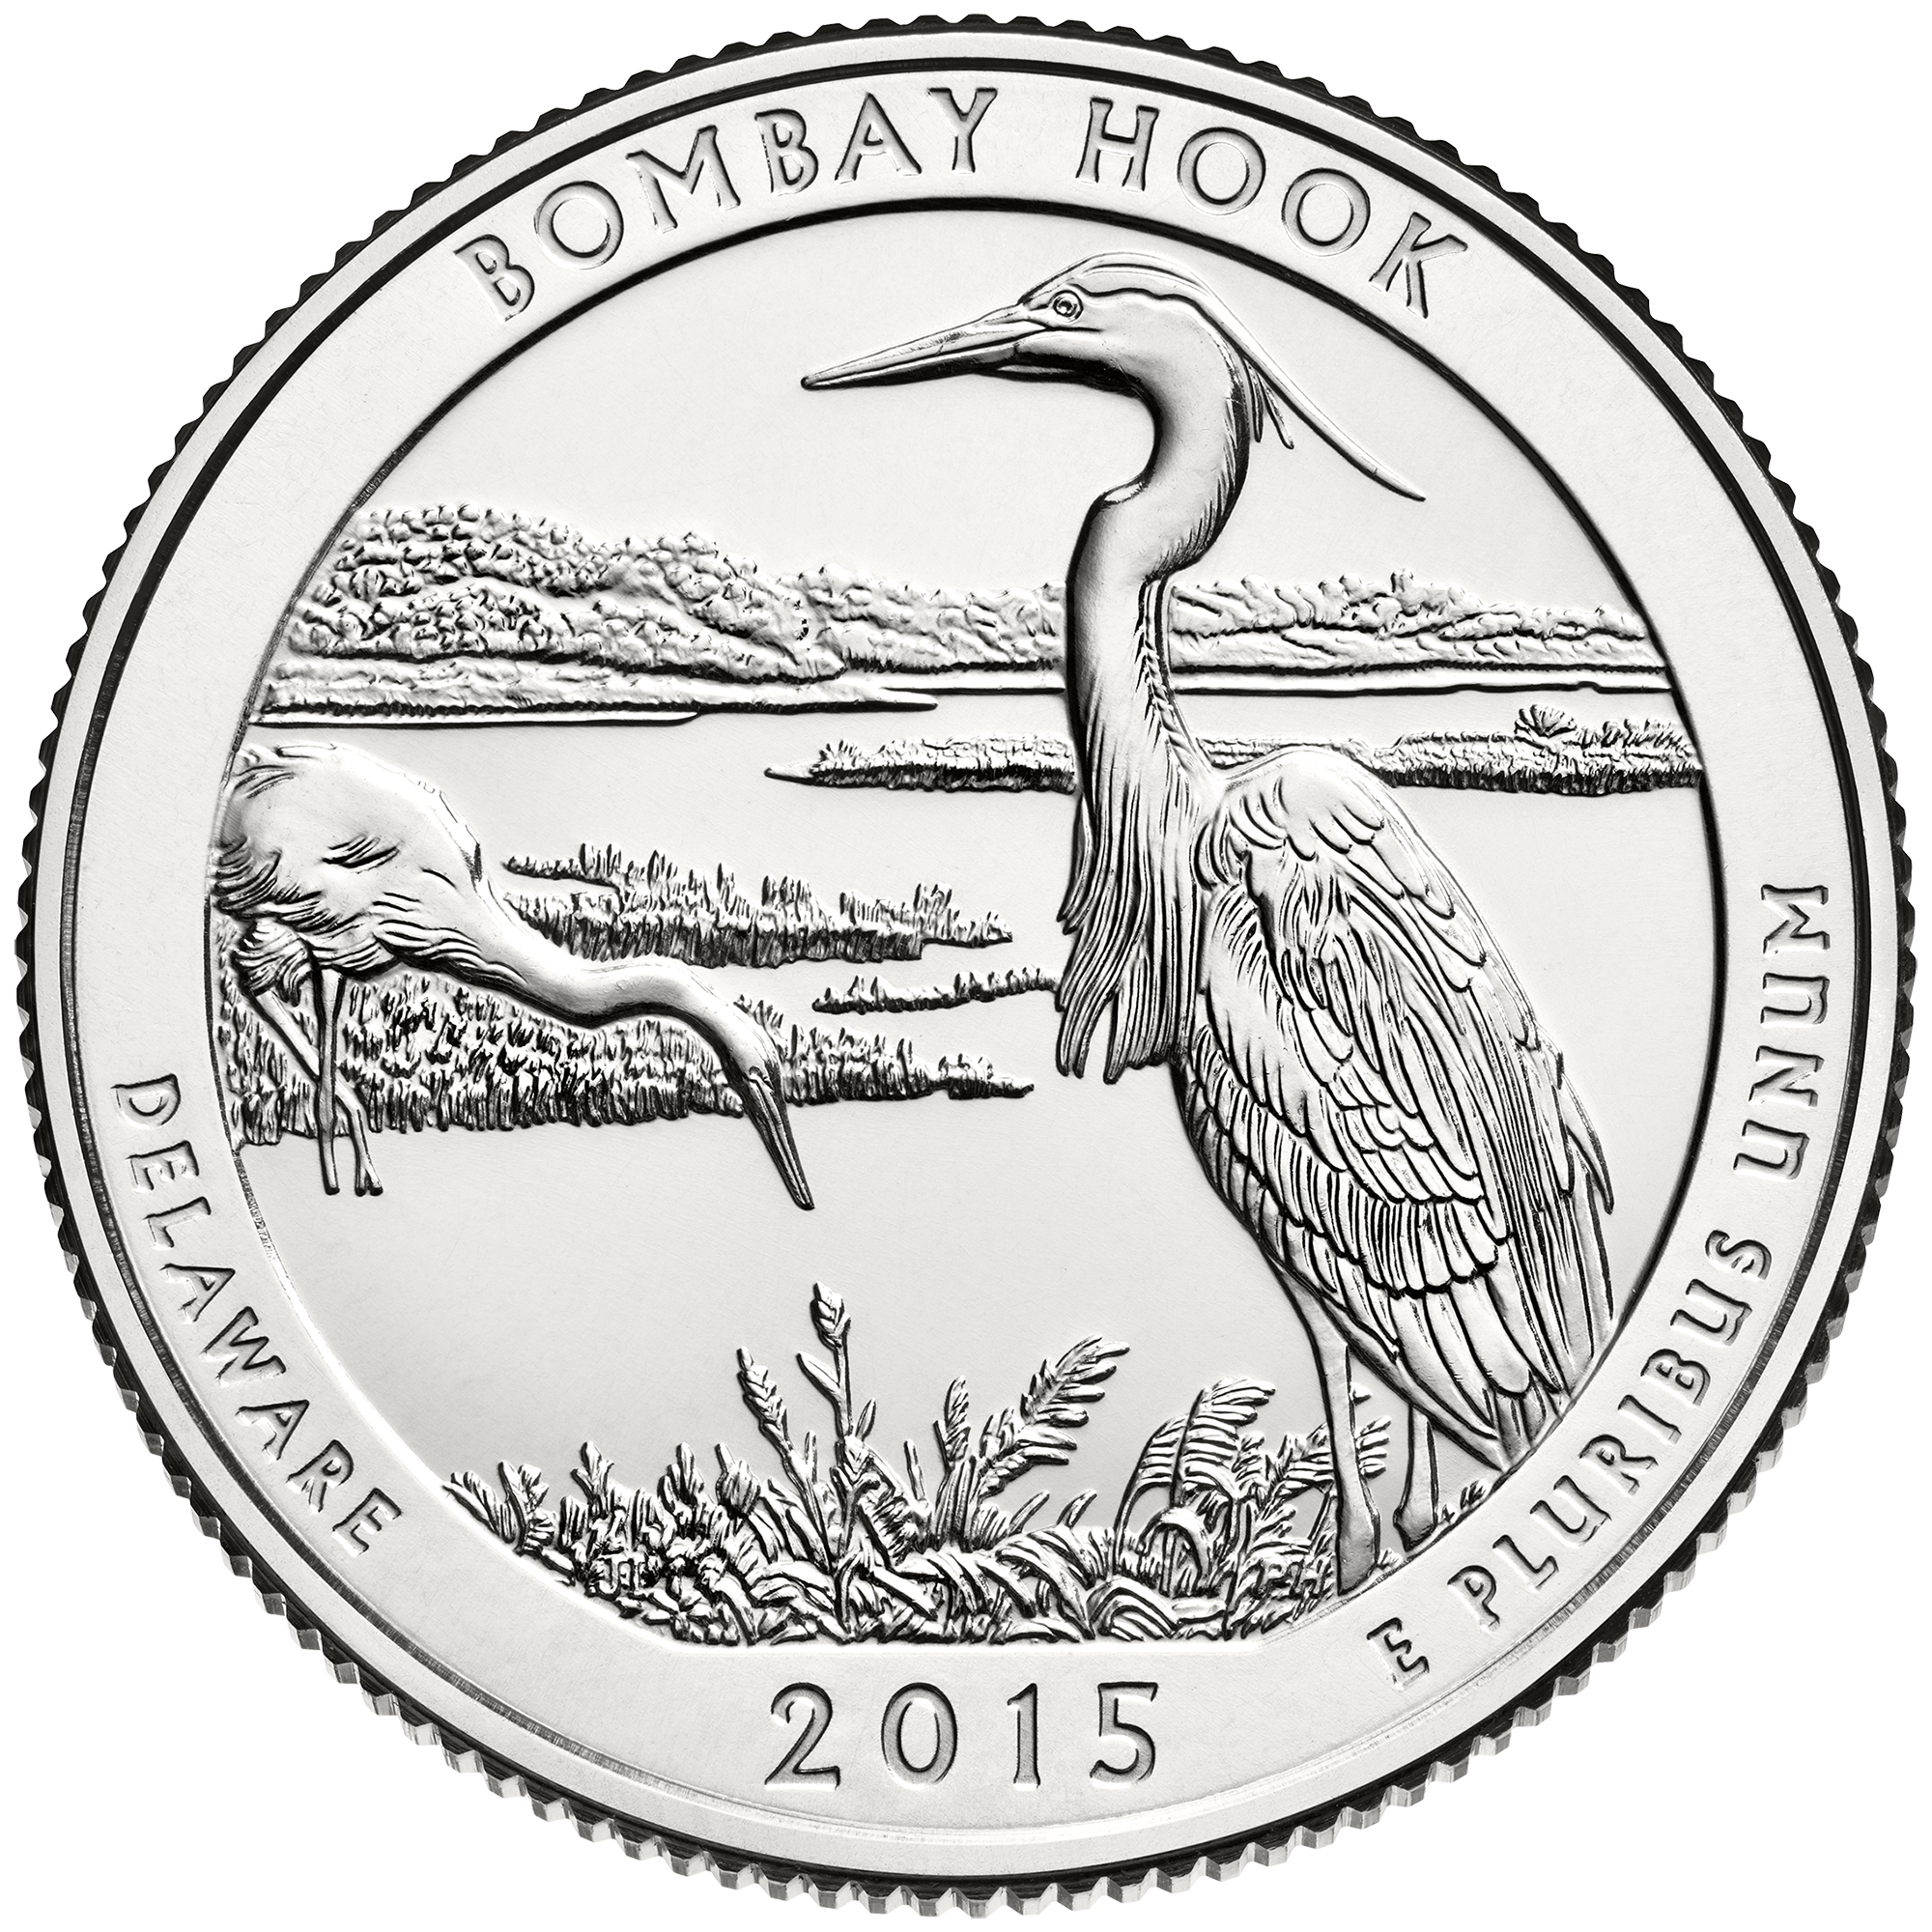 2015 America The Beautiful Quarters Coin Bombay Hook Delaware Uncirculated Reverse